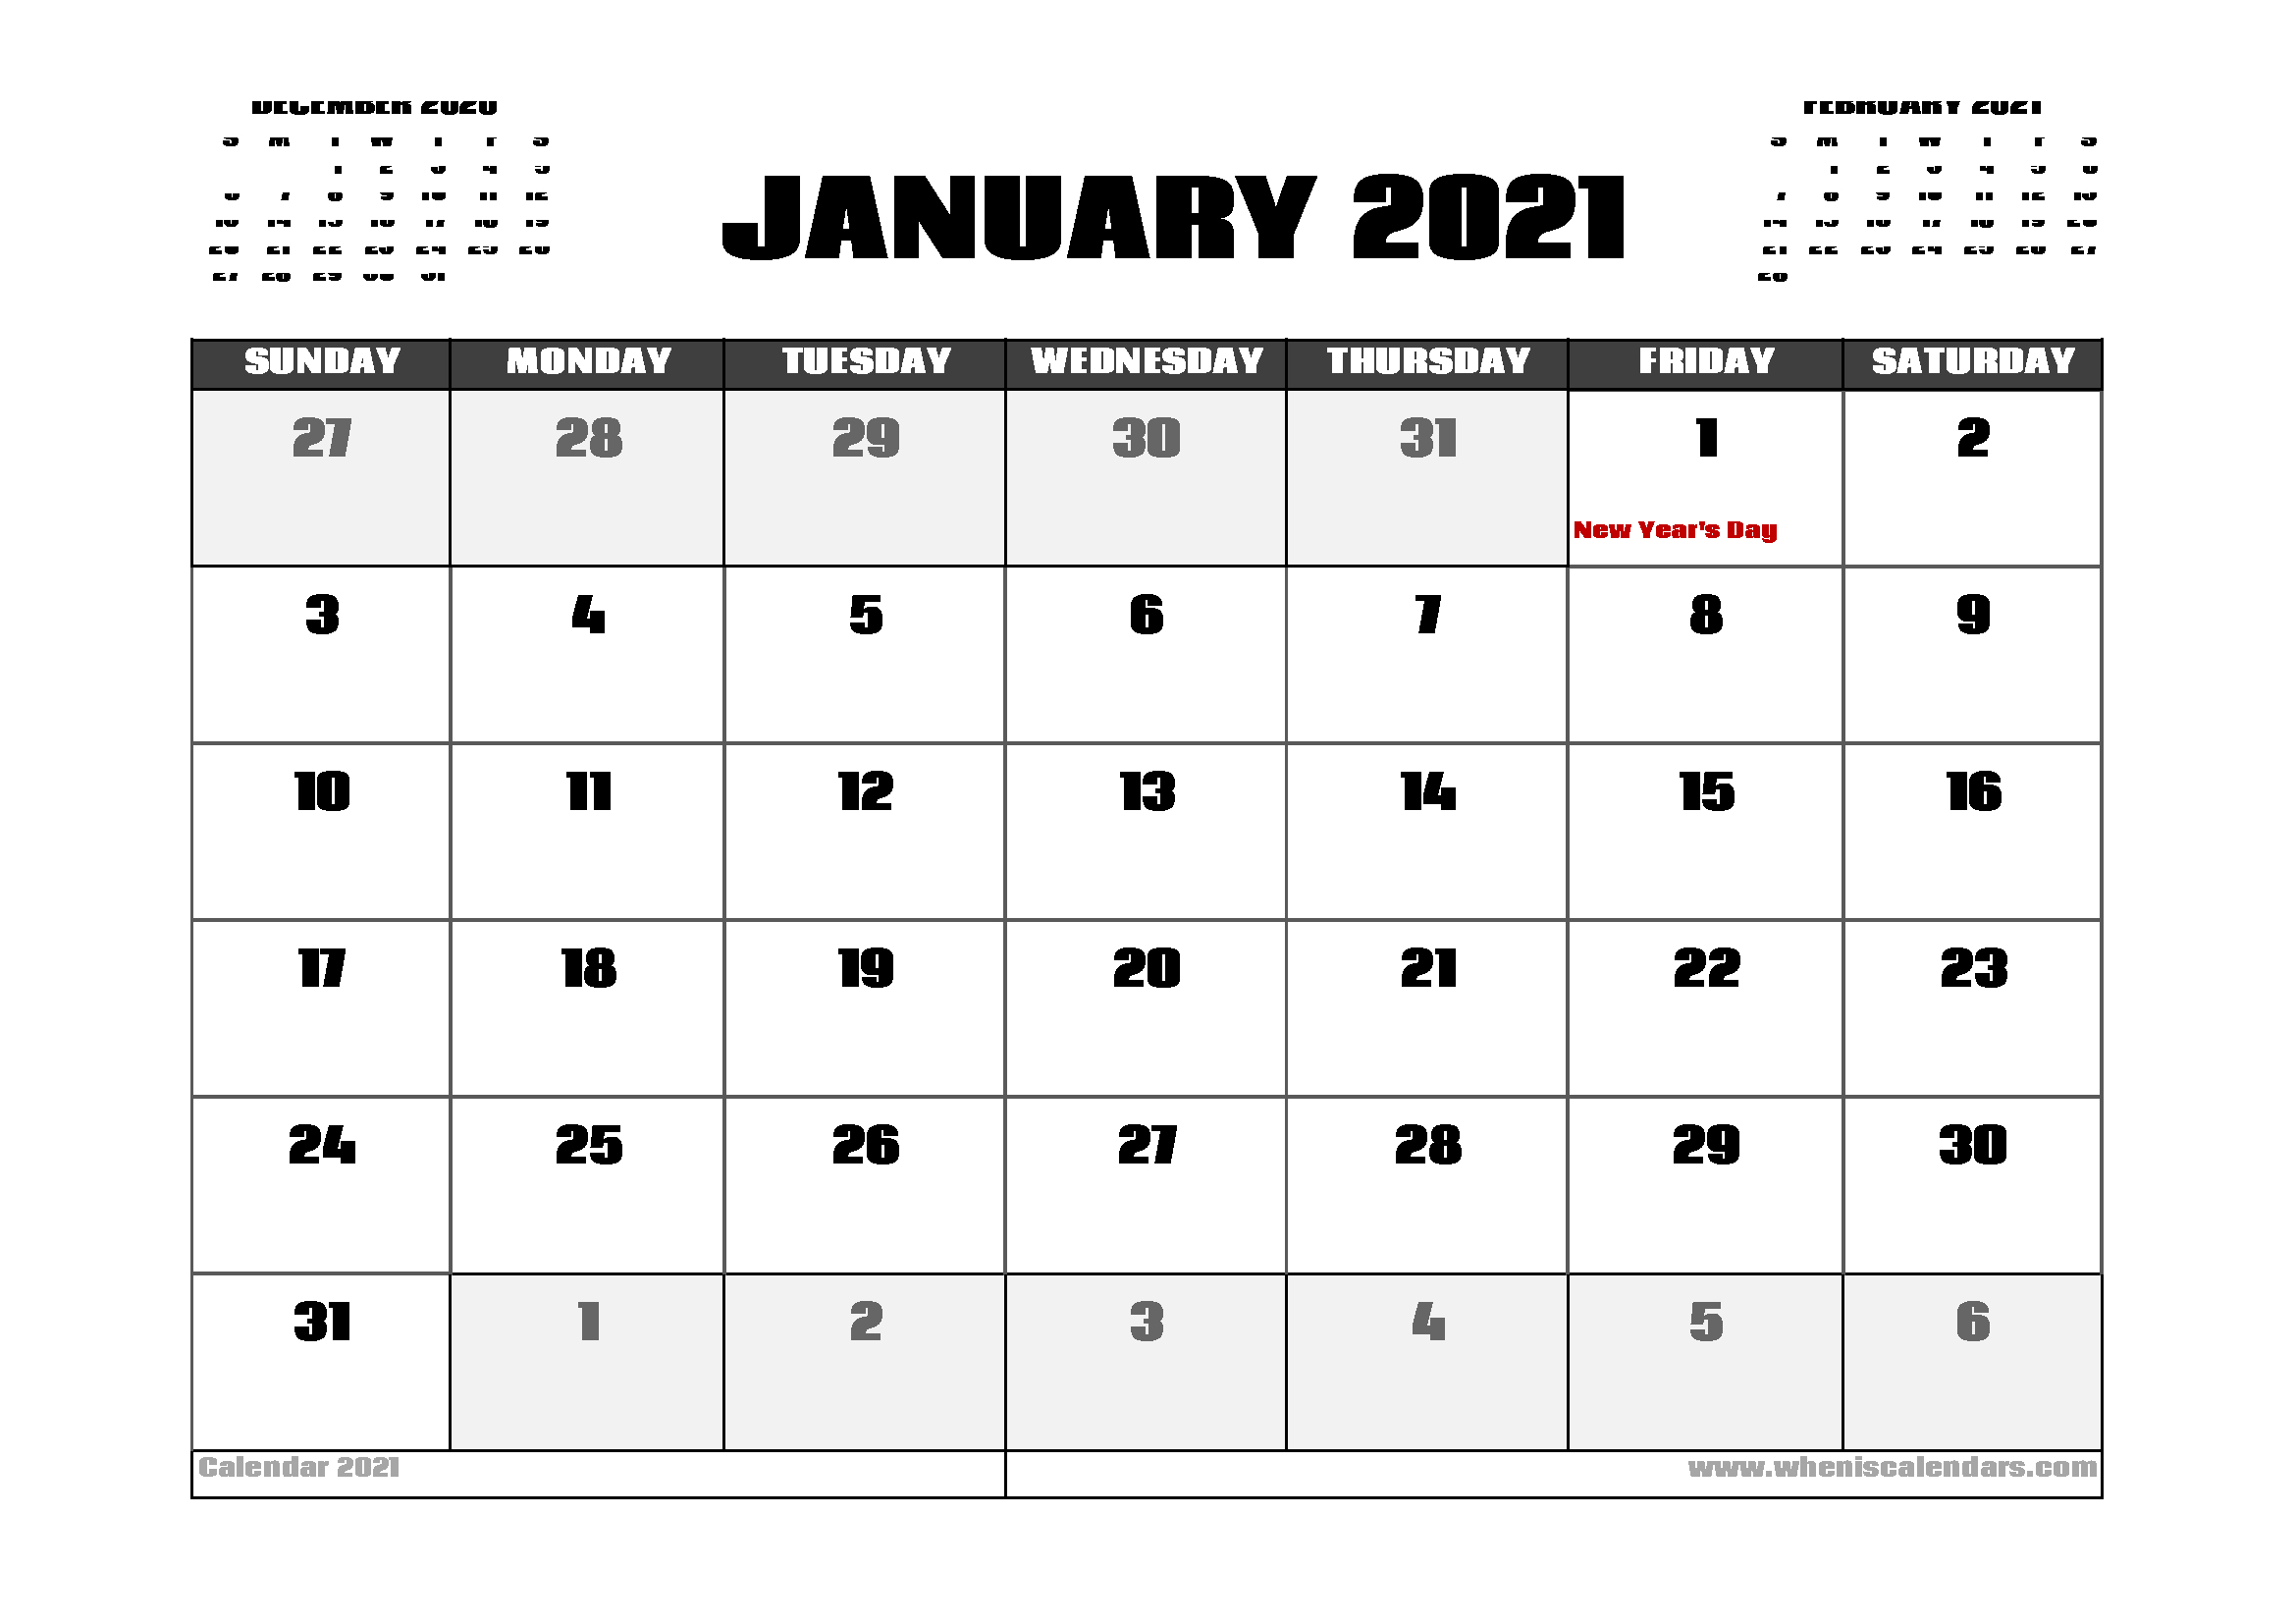 January 2021 Monthly Calendar Free Printable 2021 Calendar Canada Printable With Holidays : May